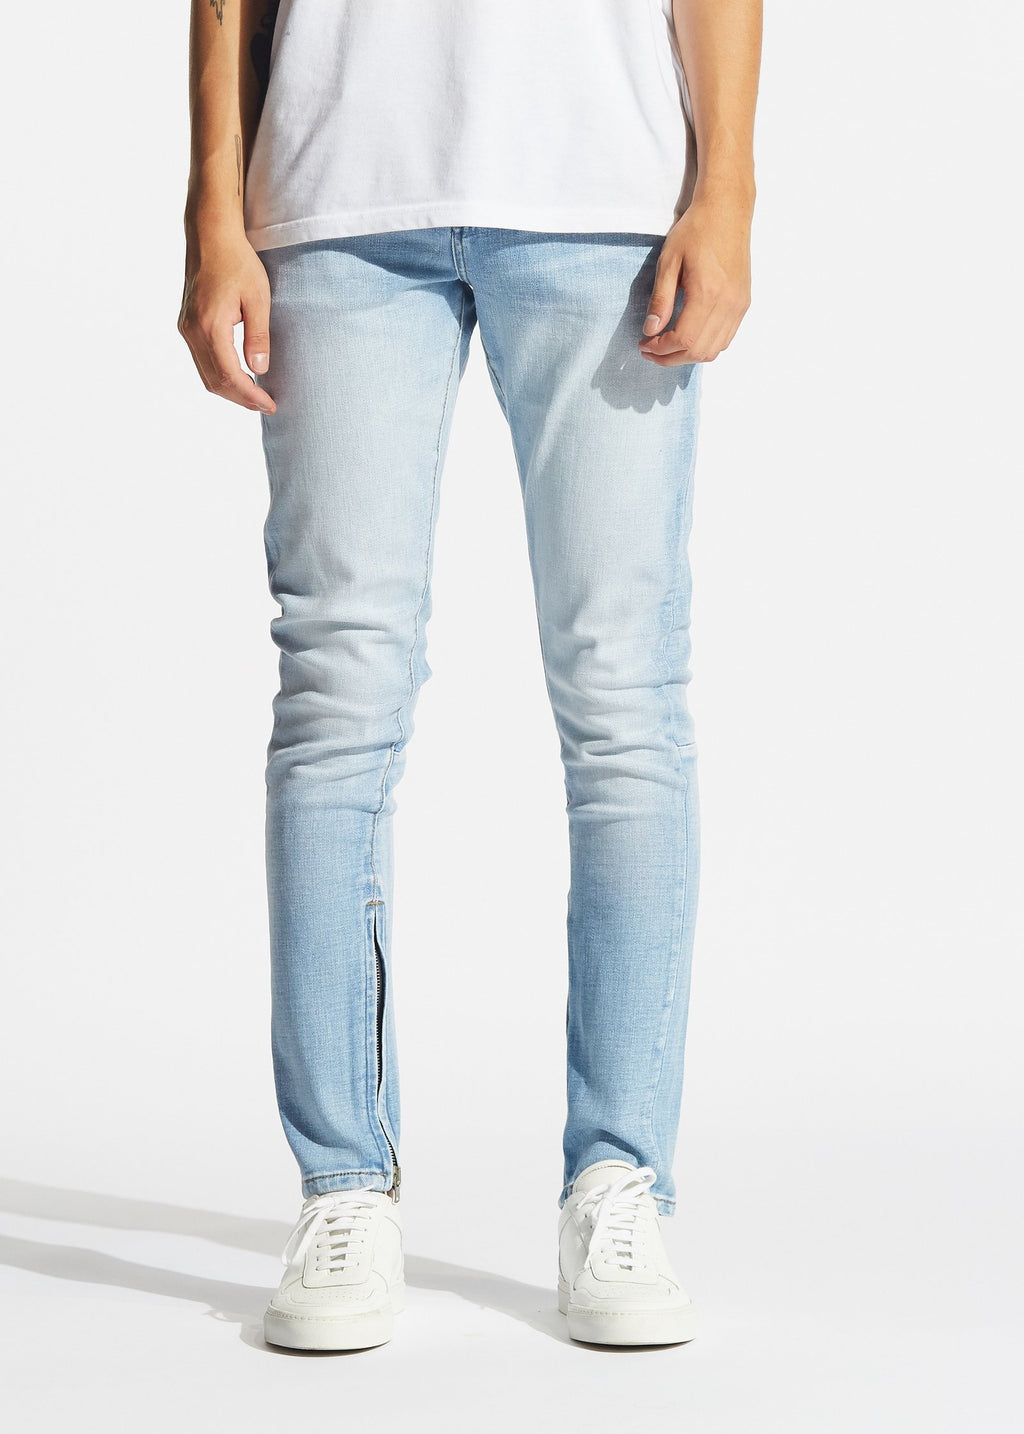 Pacific Denim Light Blue